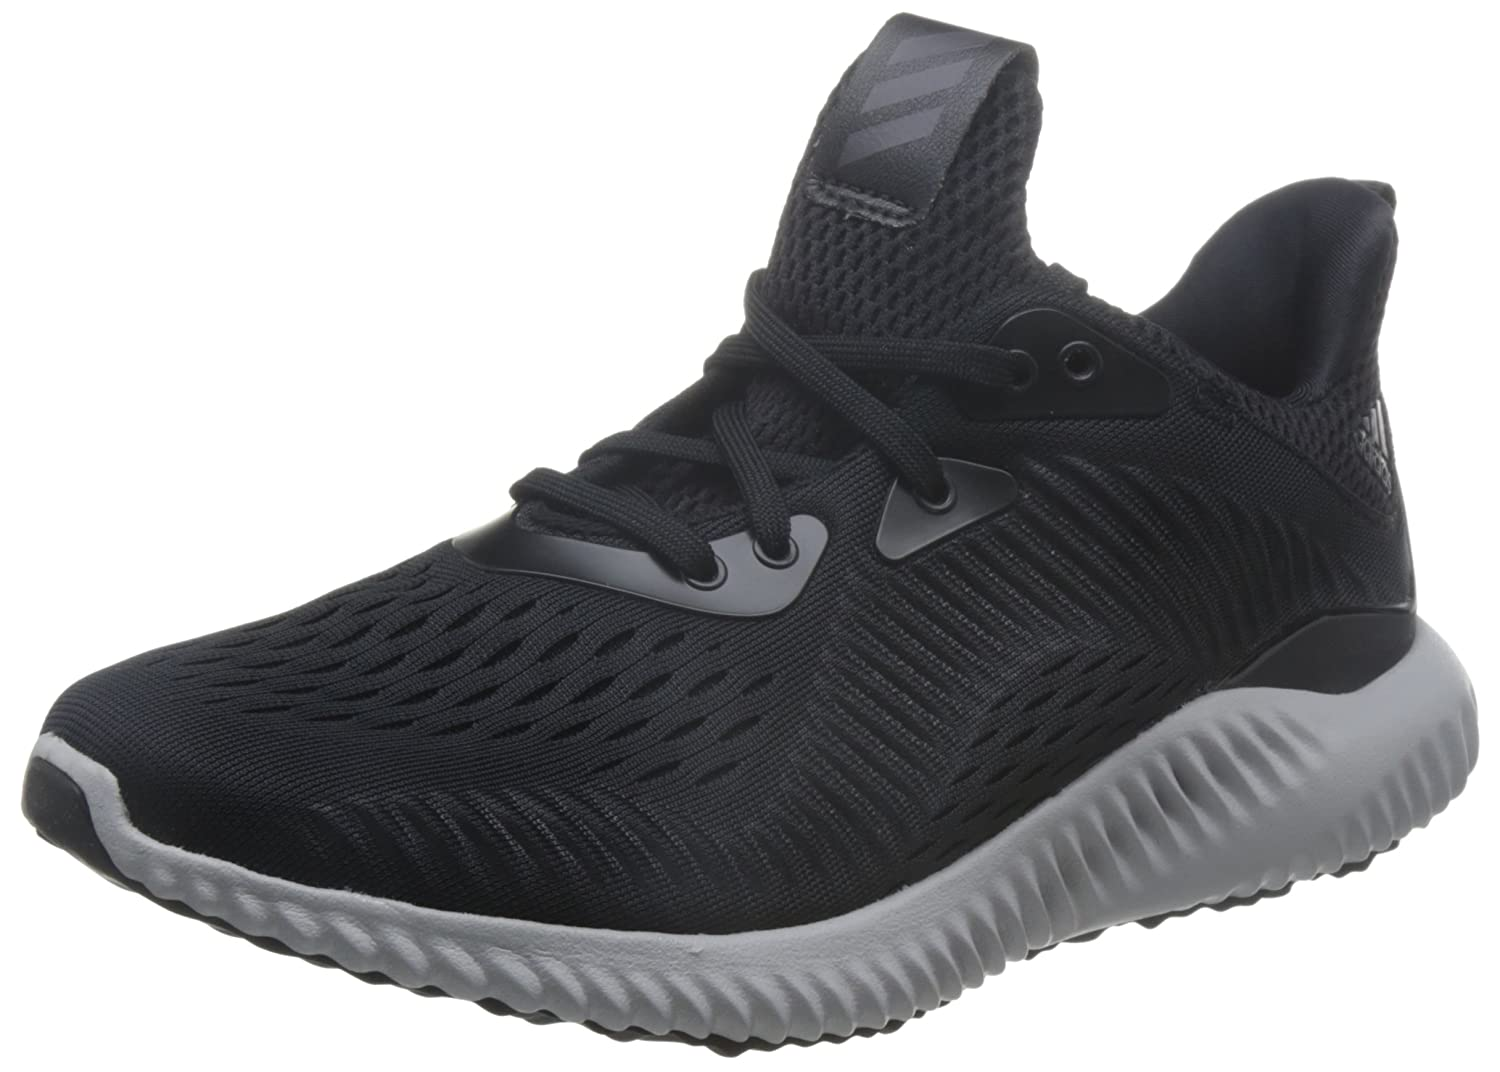 premium selection 6e152 26764 Adidas Mens Alphabounce Em M Running Shoes Buy Online at Low Prices in  India - Amazon.in